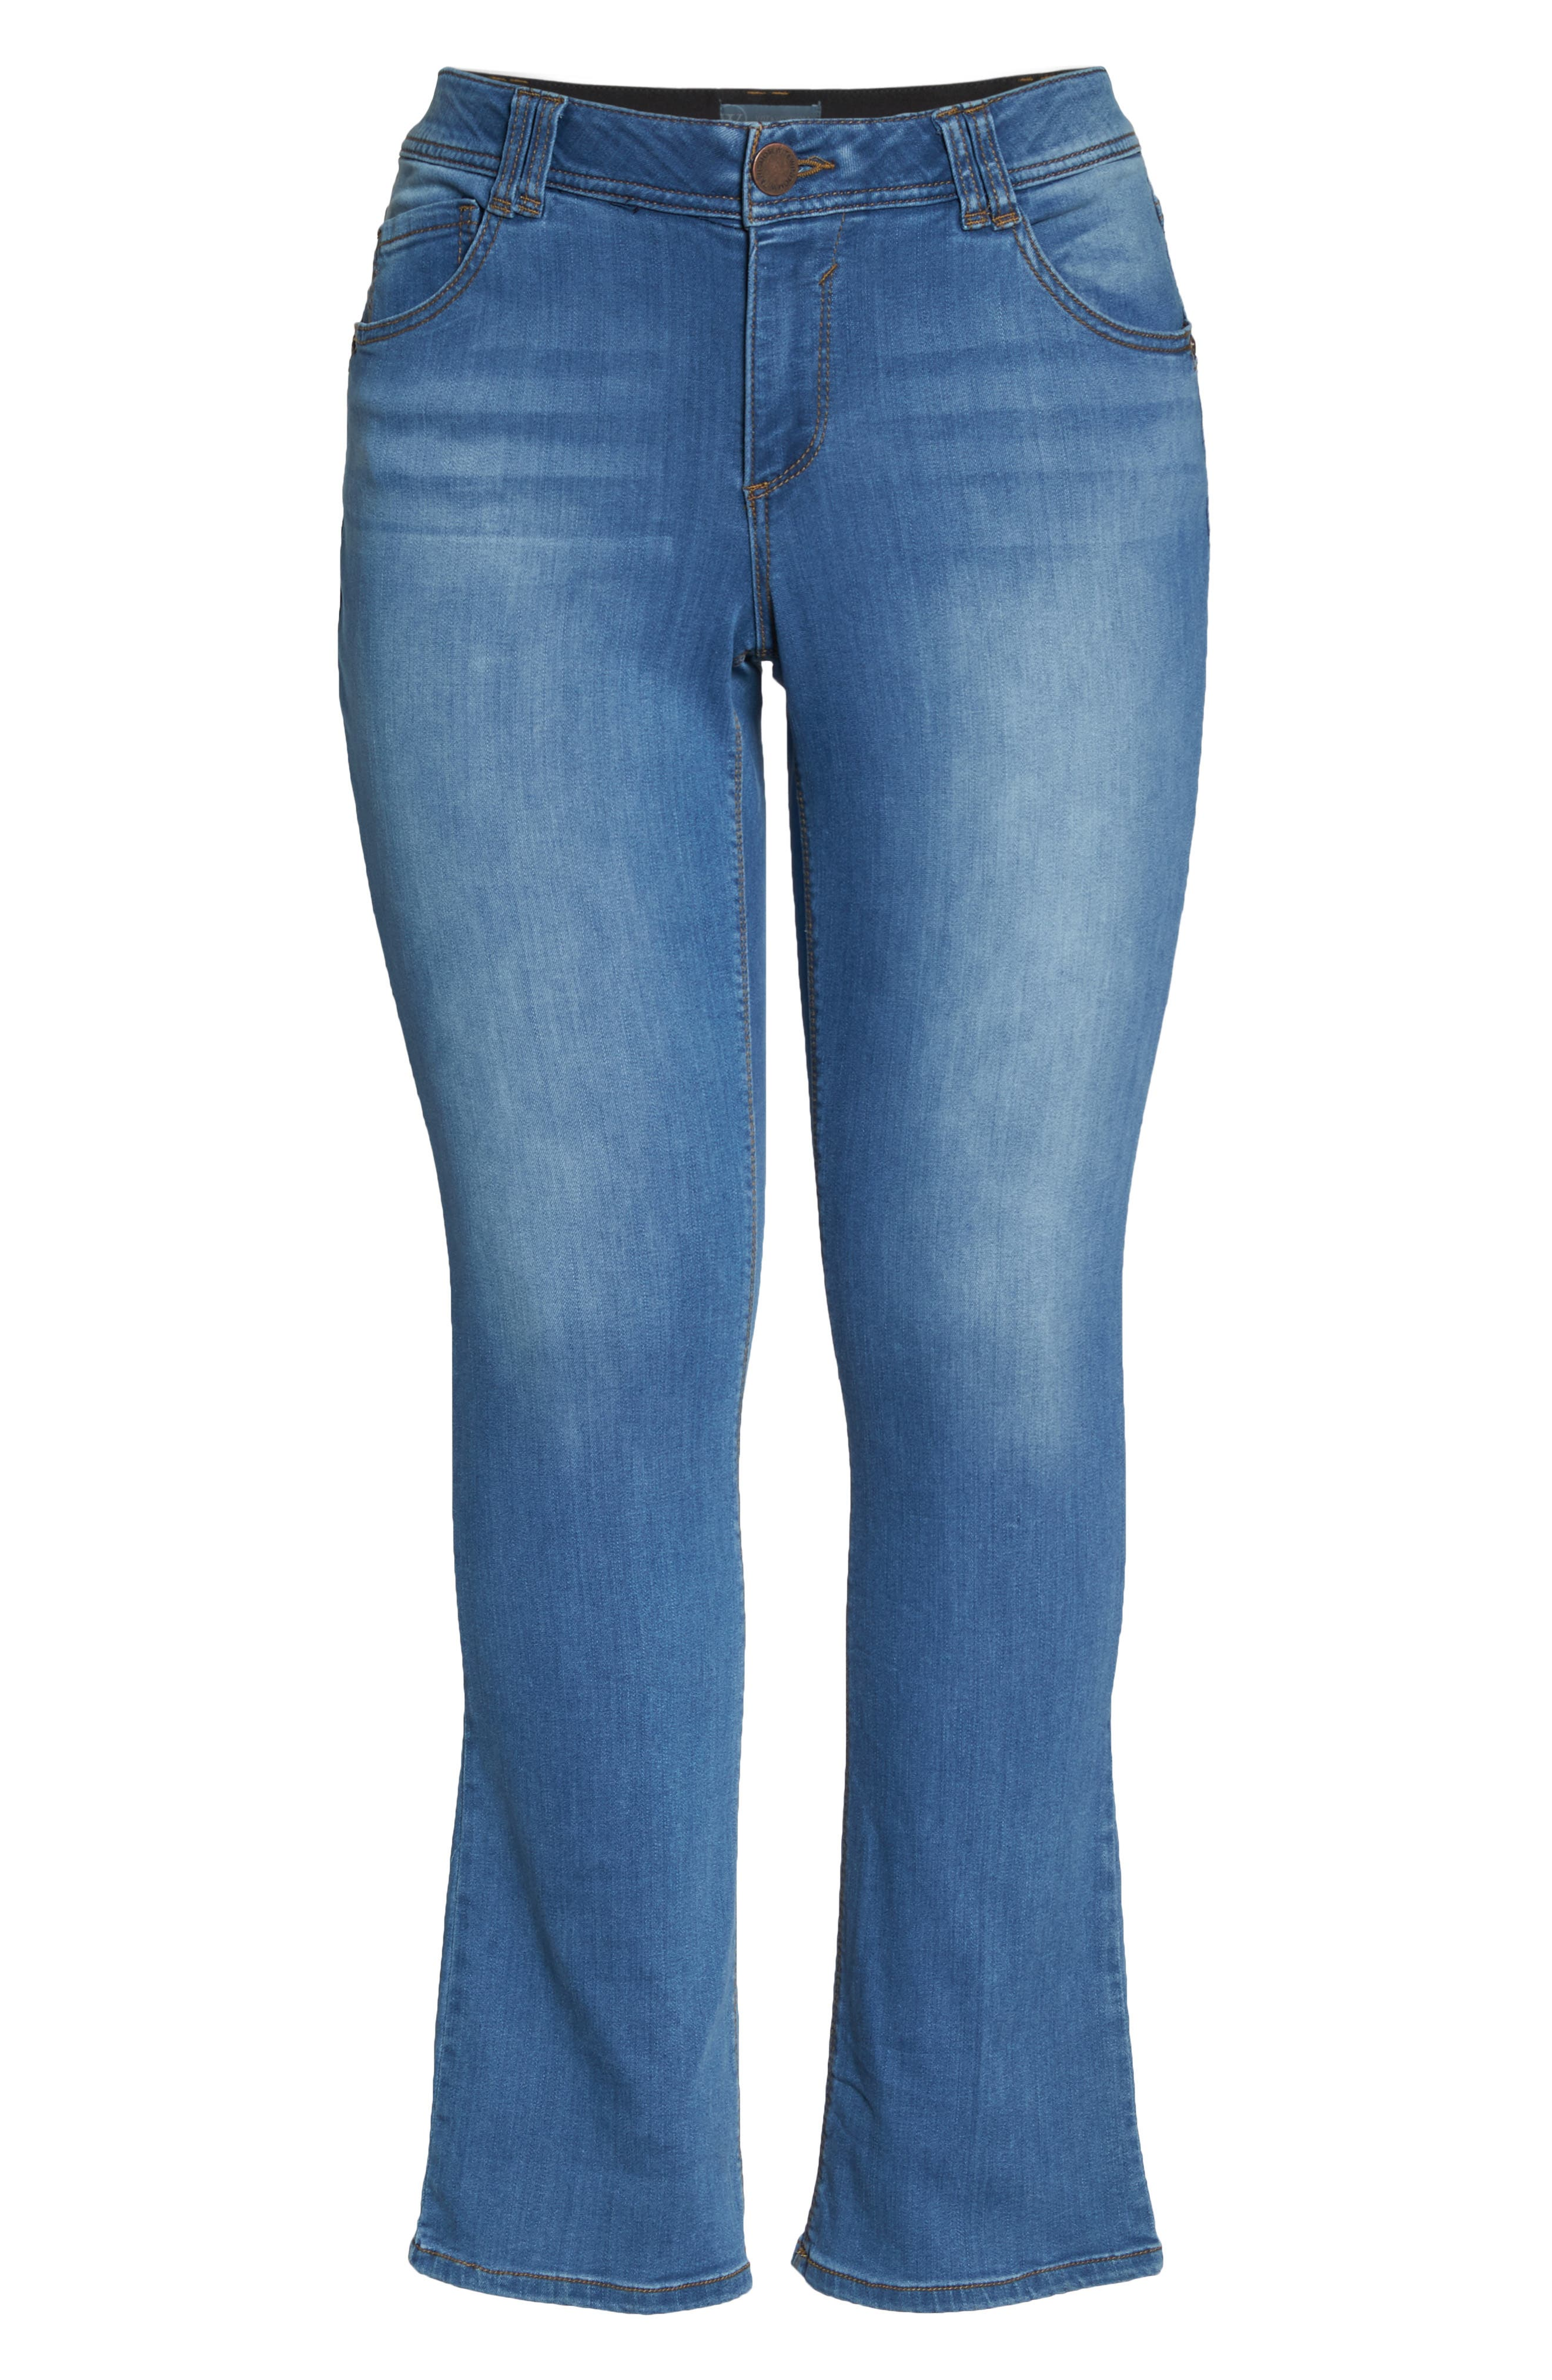 Ab-solution Luxe Touch Bootcut Jeans,                             Alternate thumbnail 7, color,                             Light Blue